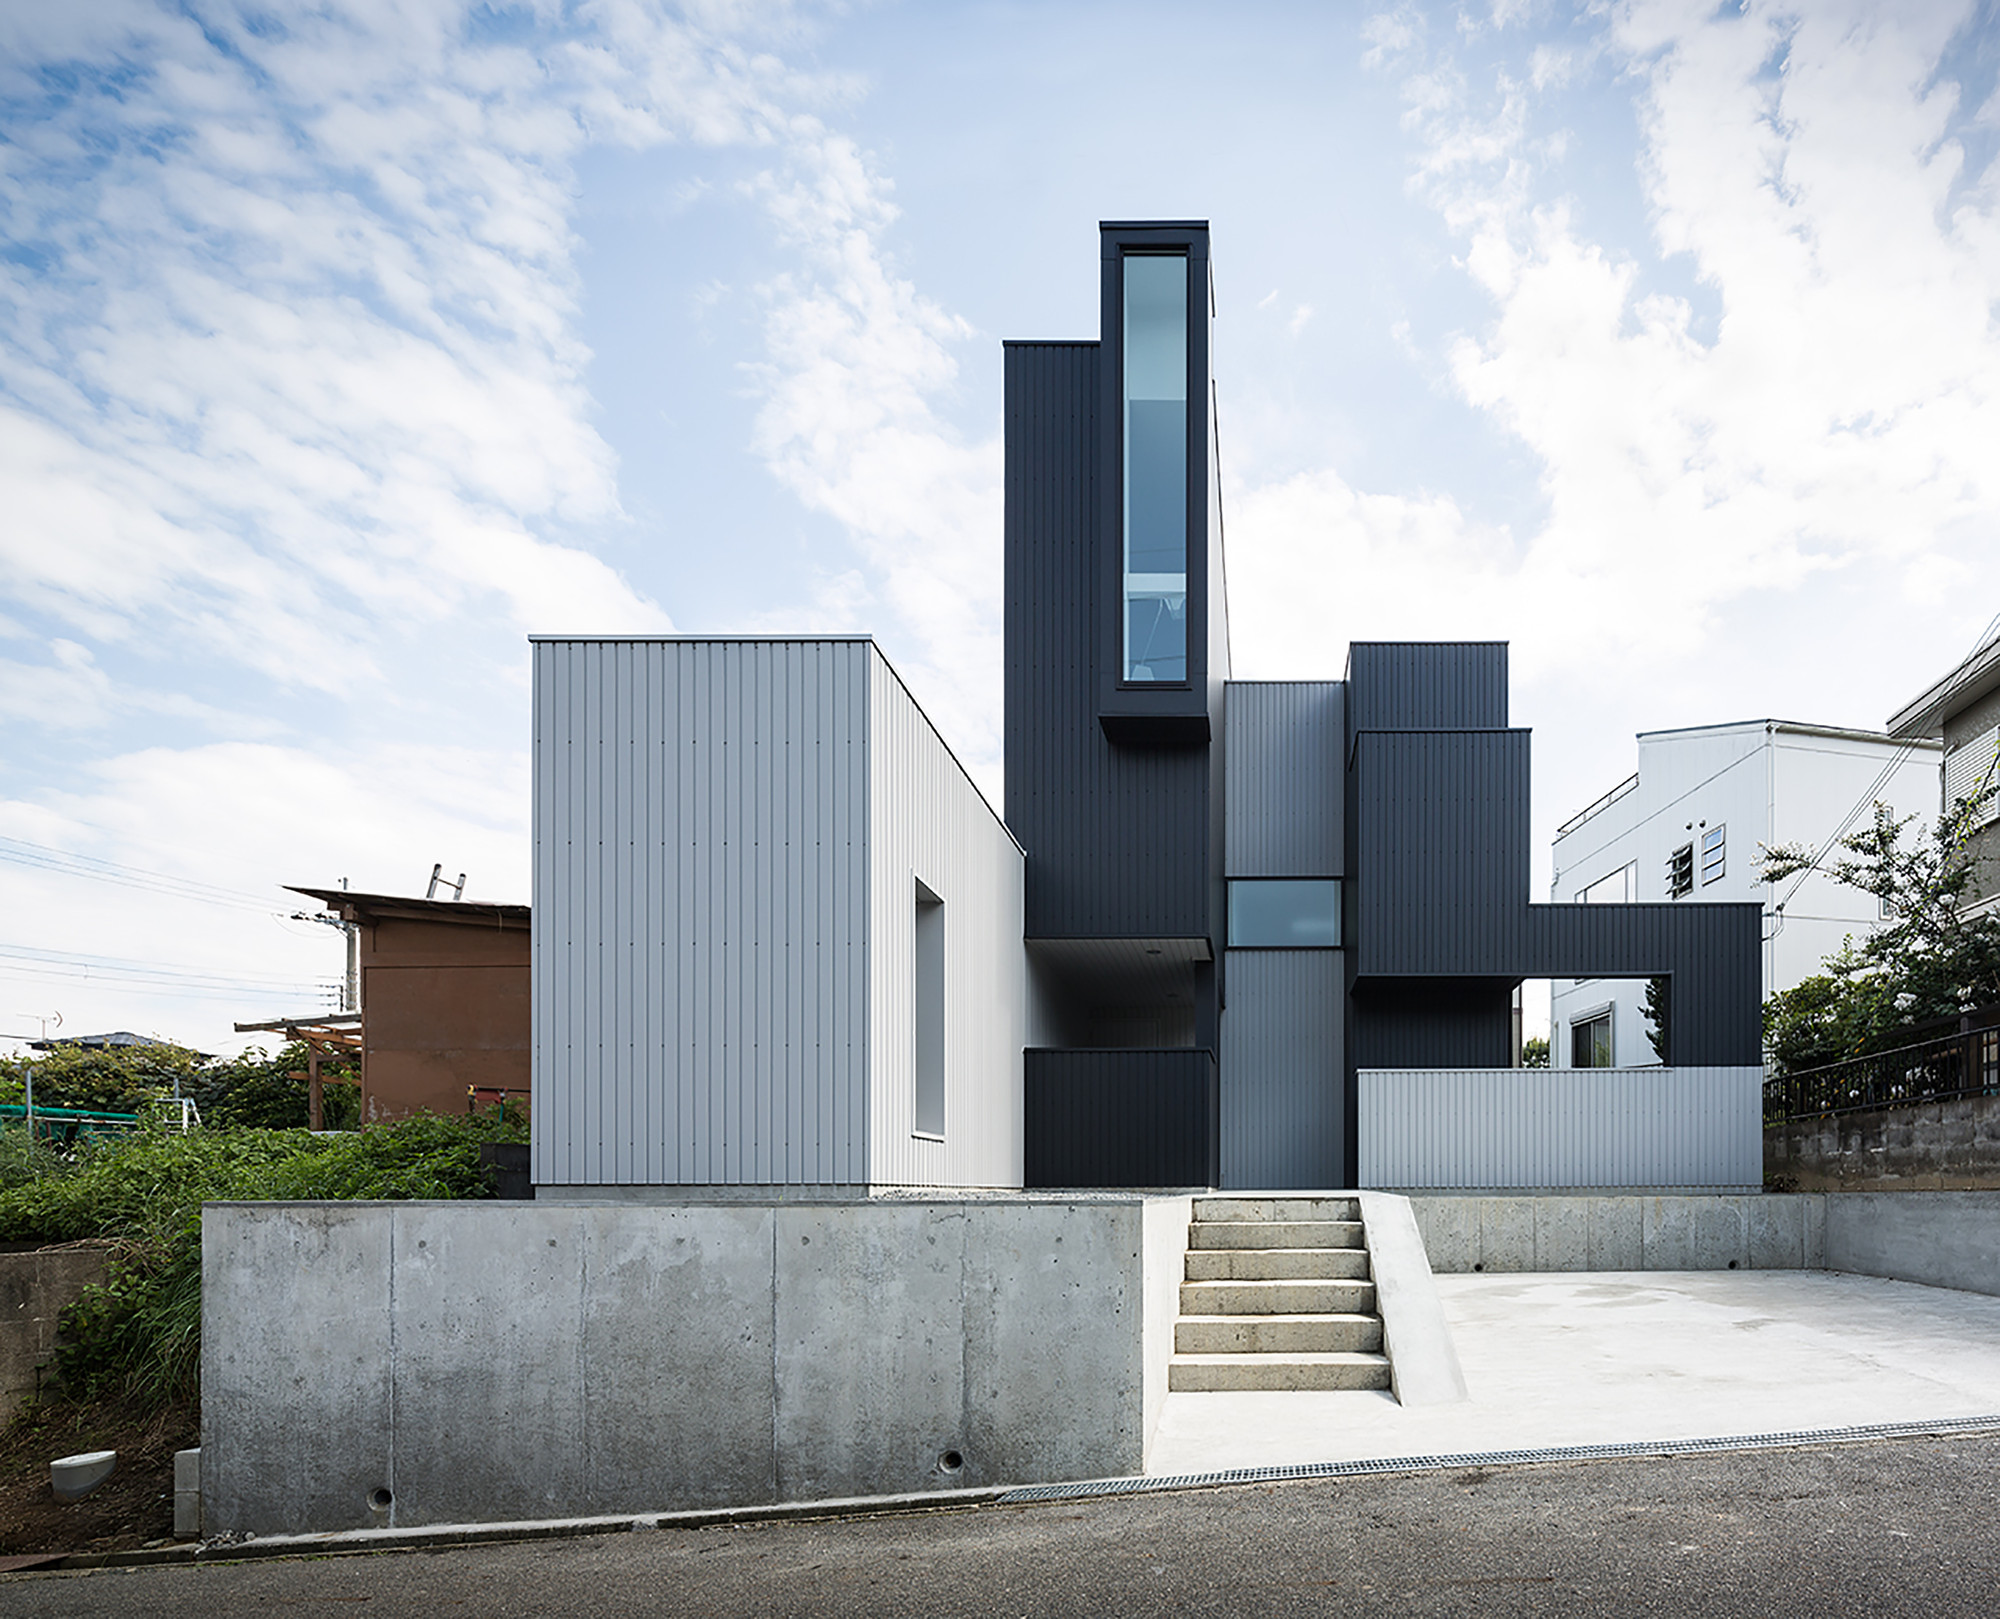 Scape house by form kouichi kimura architects in shiga japan - Architecturen volumes ...